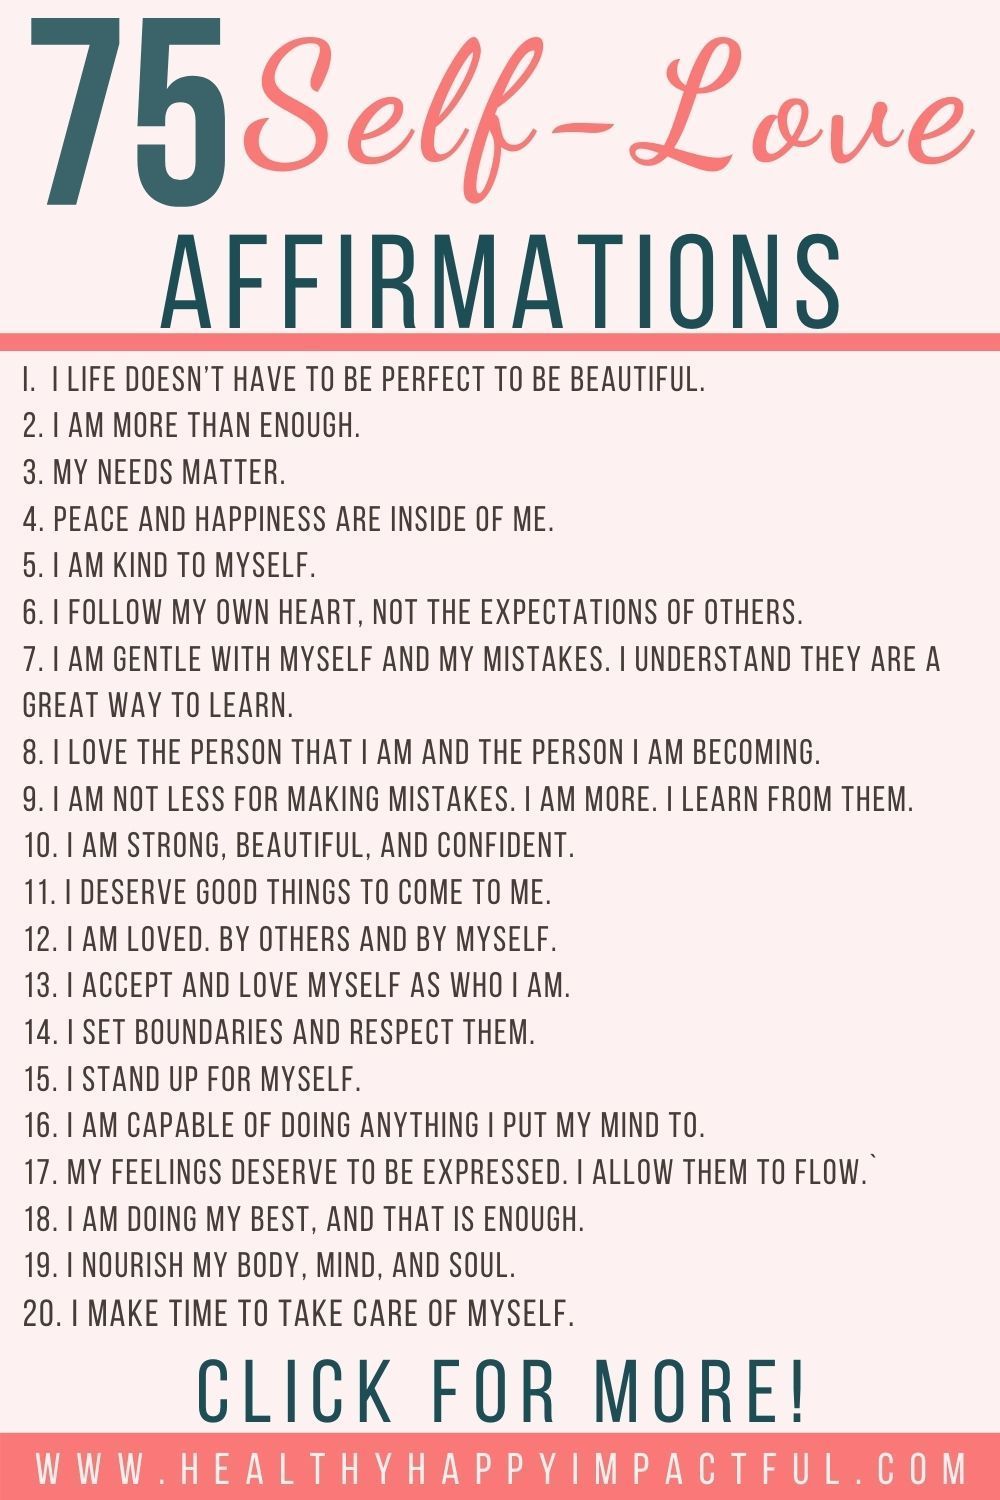 What Are Some Positive Affirmations